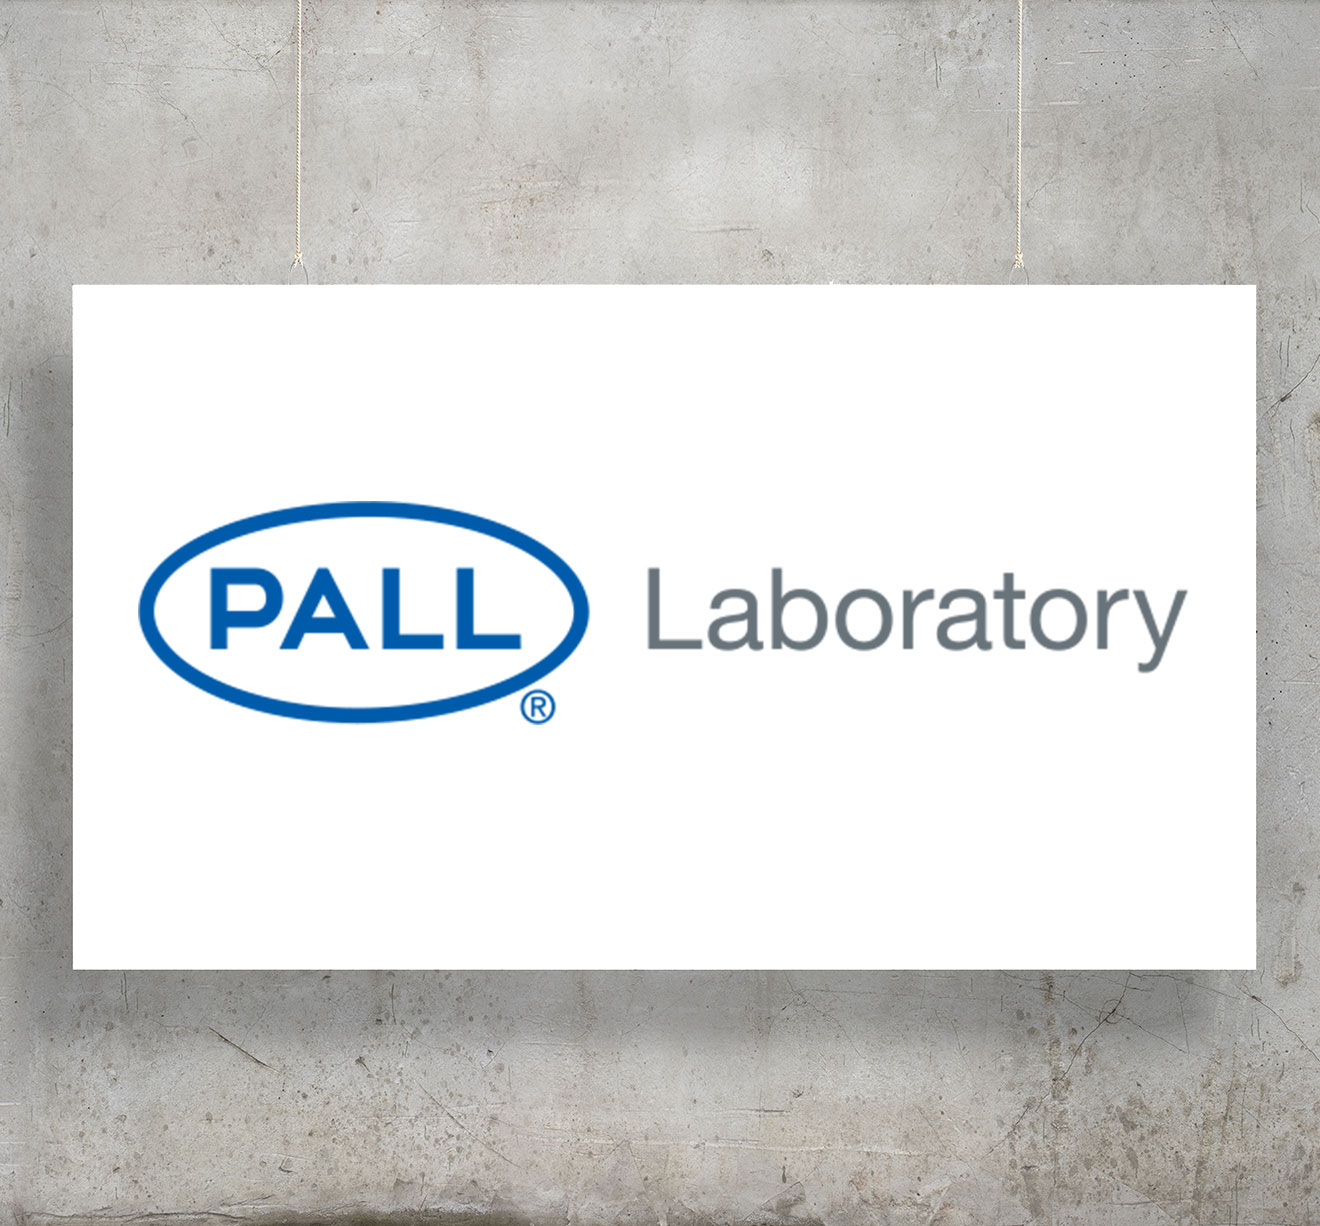 Pall Laboratory Drug Target Review